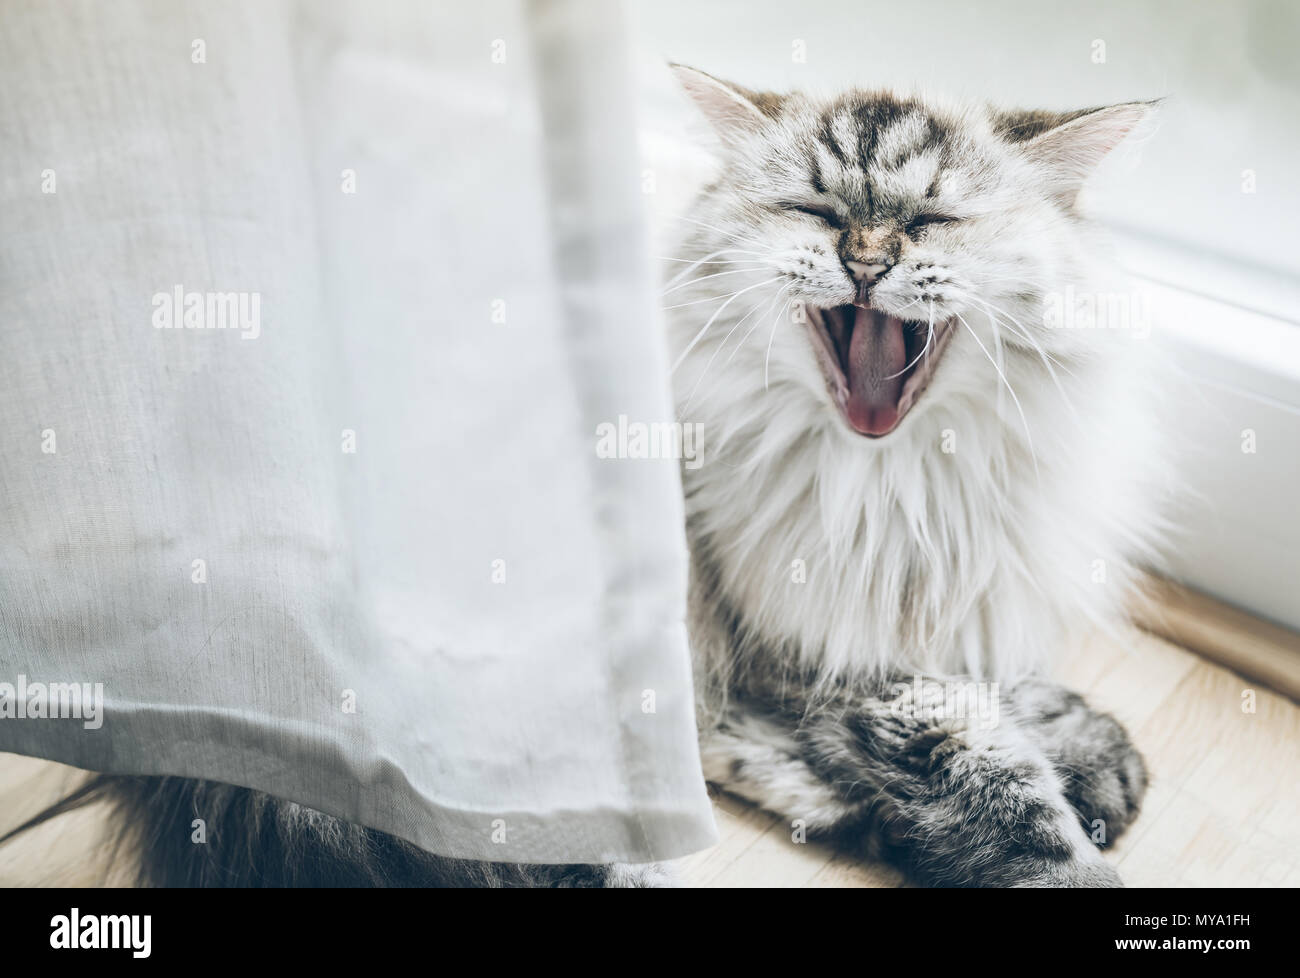 yawning fluffy cat on wooden floor behind curtain - Stock Image